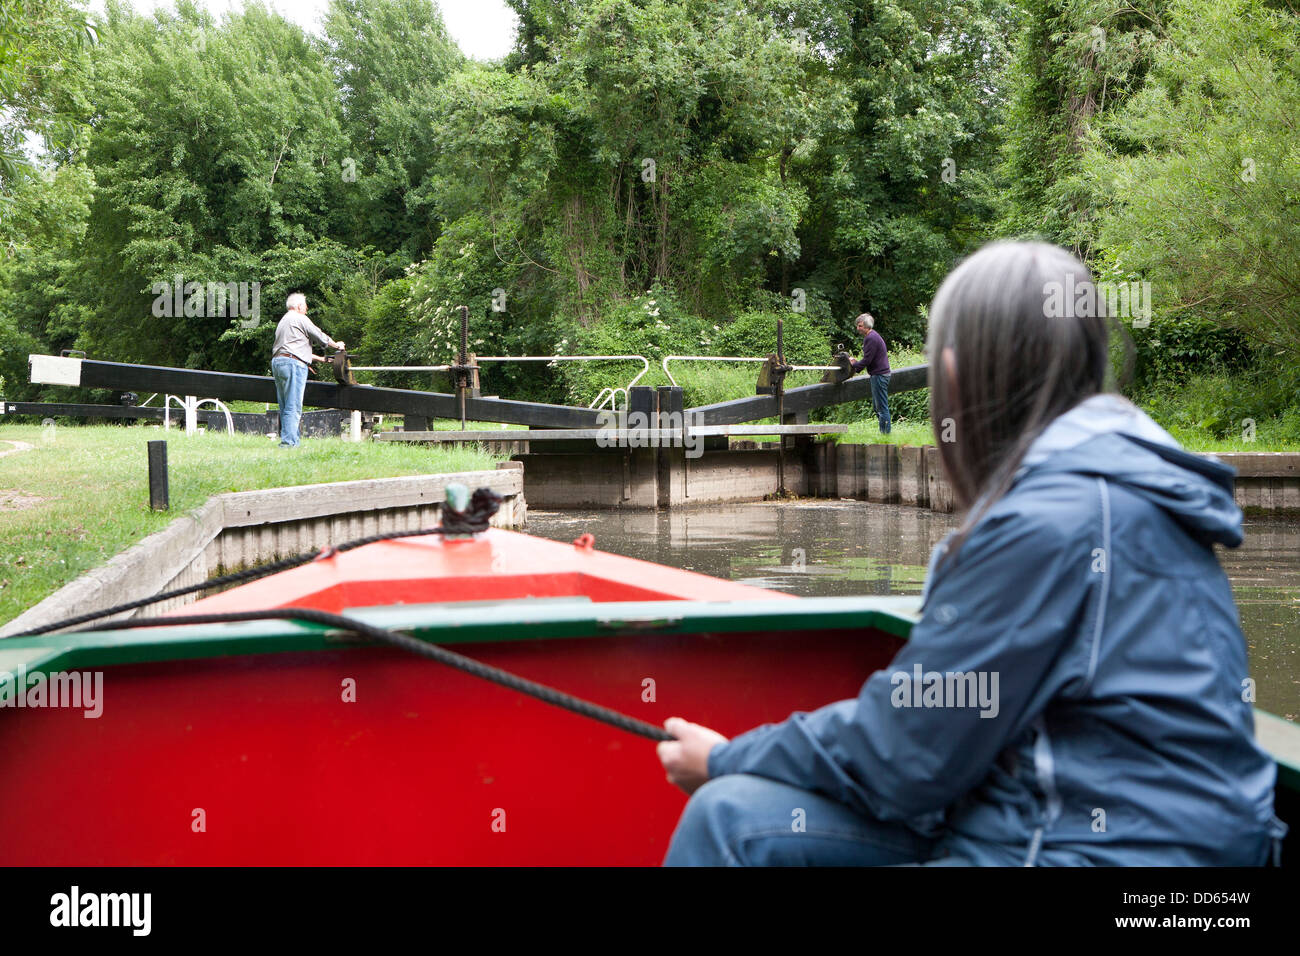 A close view ofwoman holding a rope securing a narrow boat (Barge) whilst a Lock is opened in the distance. - Stock Image